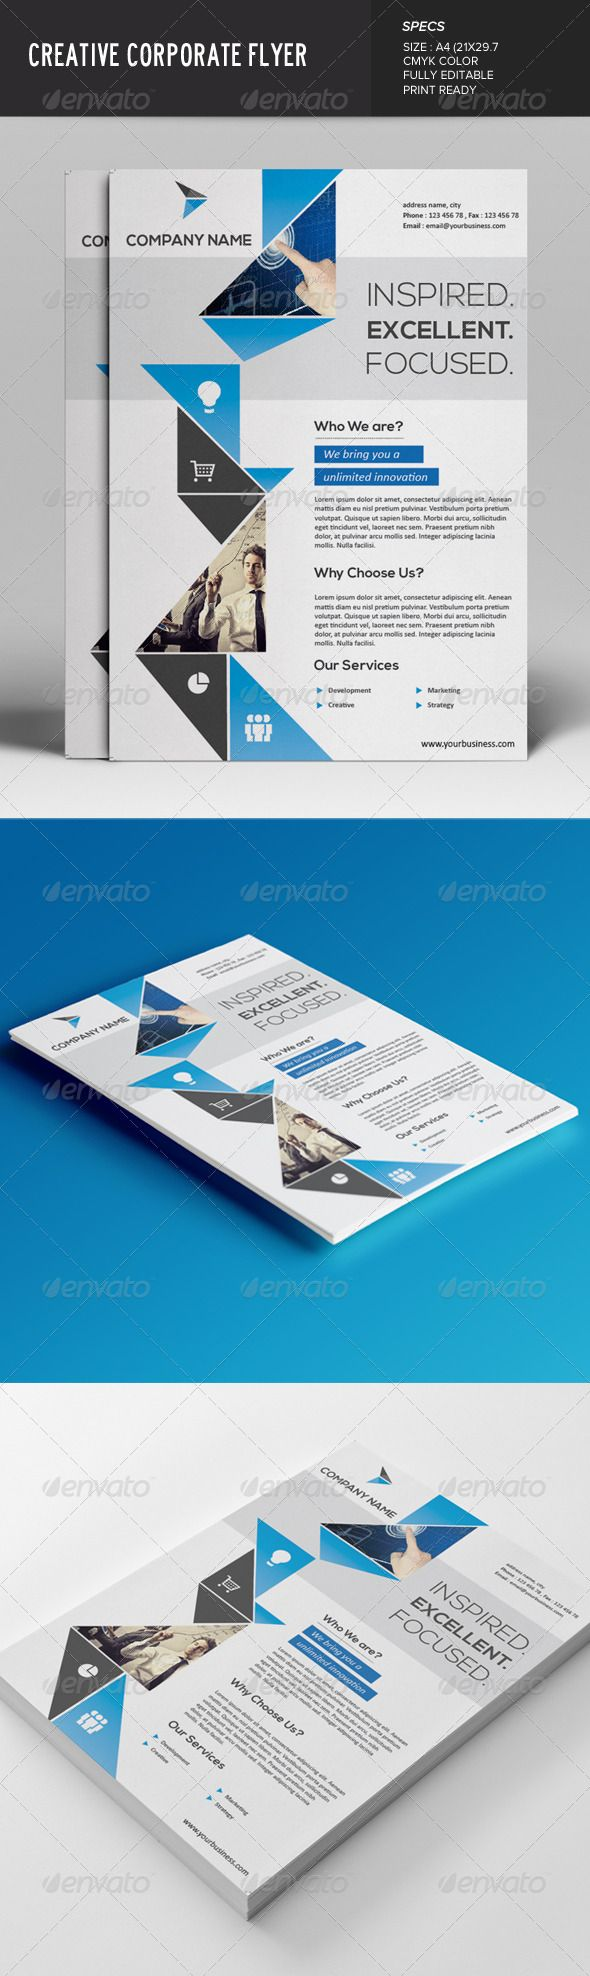 Flyer Vector Eps Corporate Simple Available Here Https Graphicriver Net Item Flyer 7619364 Ref Pxcr Corporate Flyer Company Profile Design Flyer